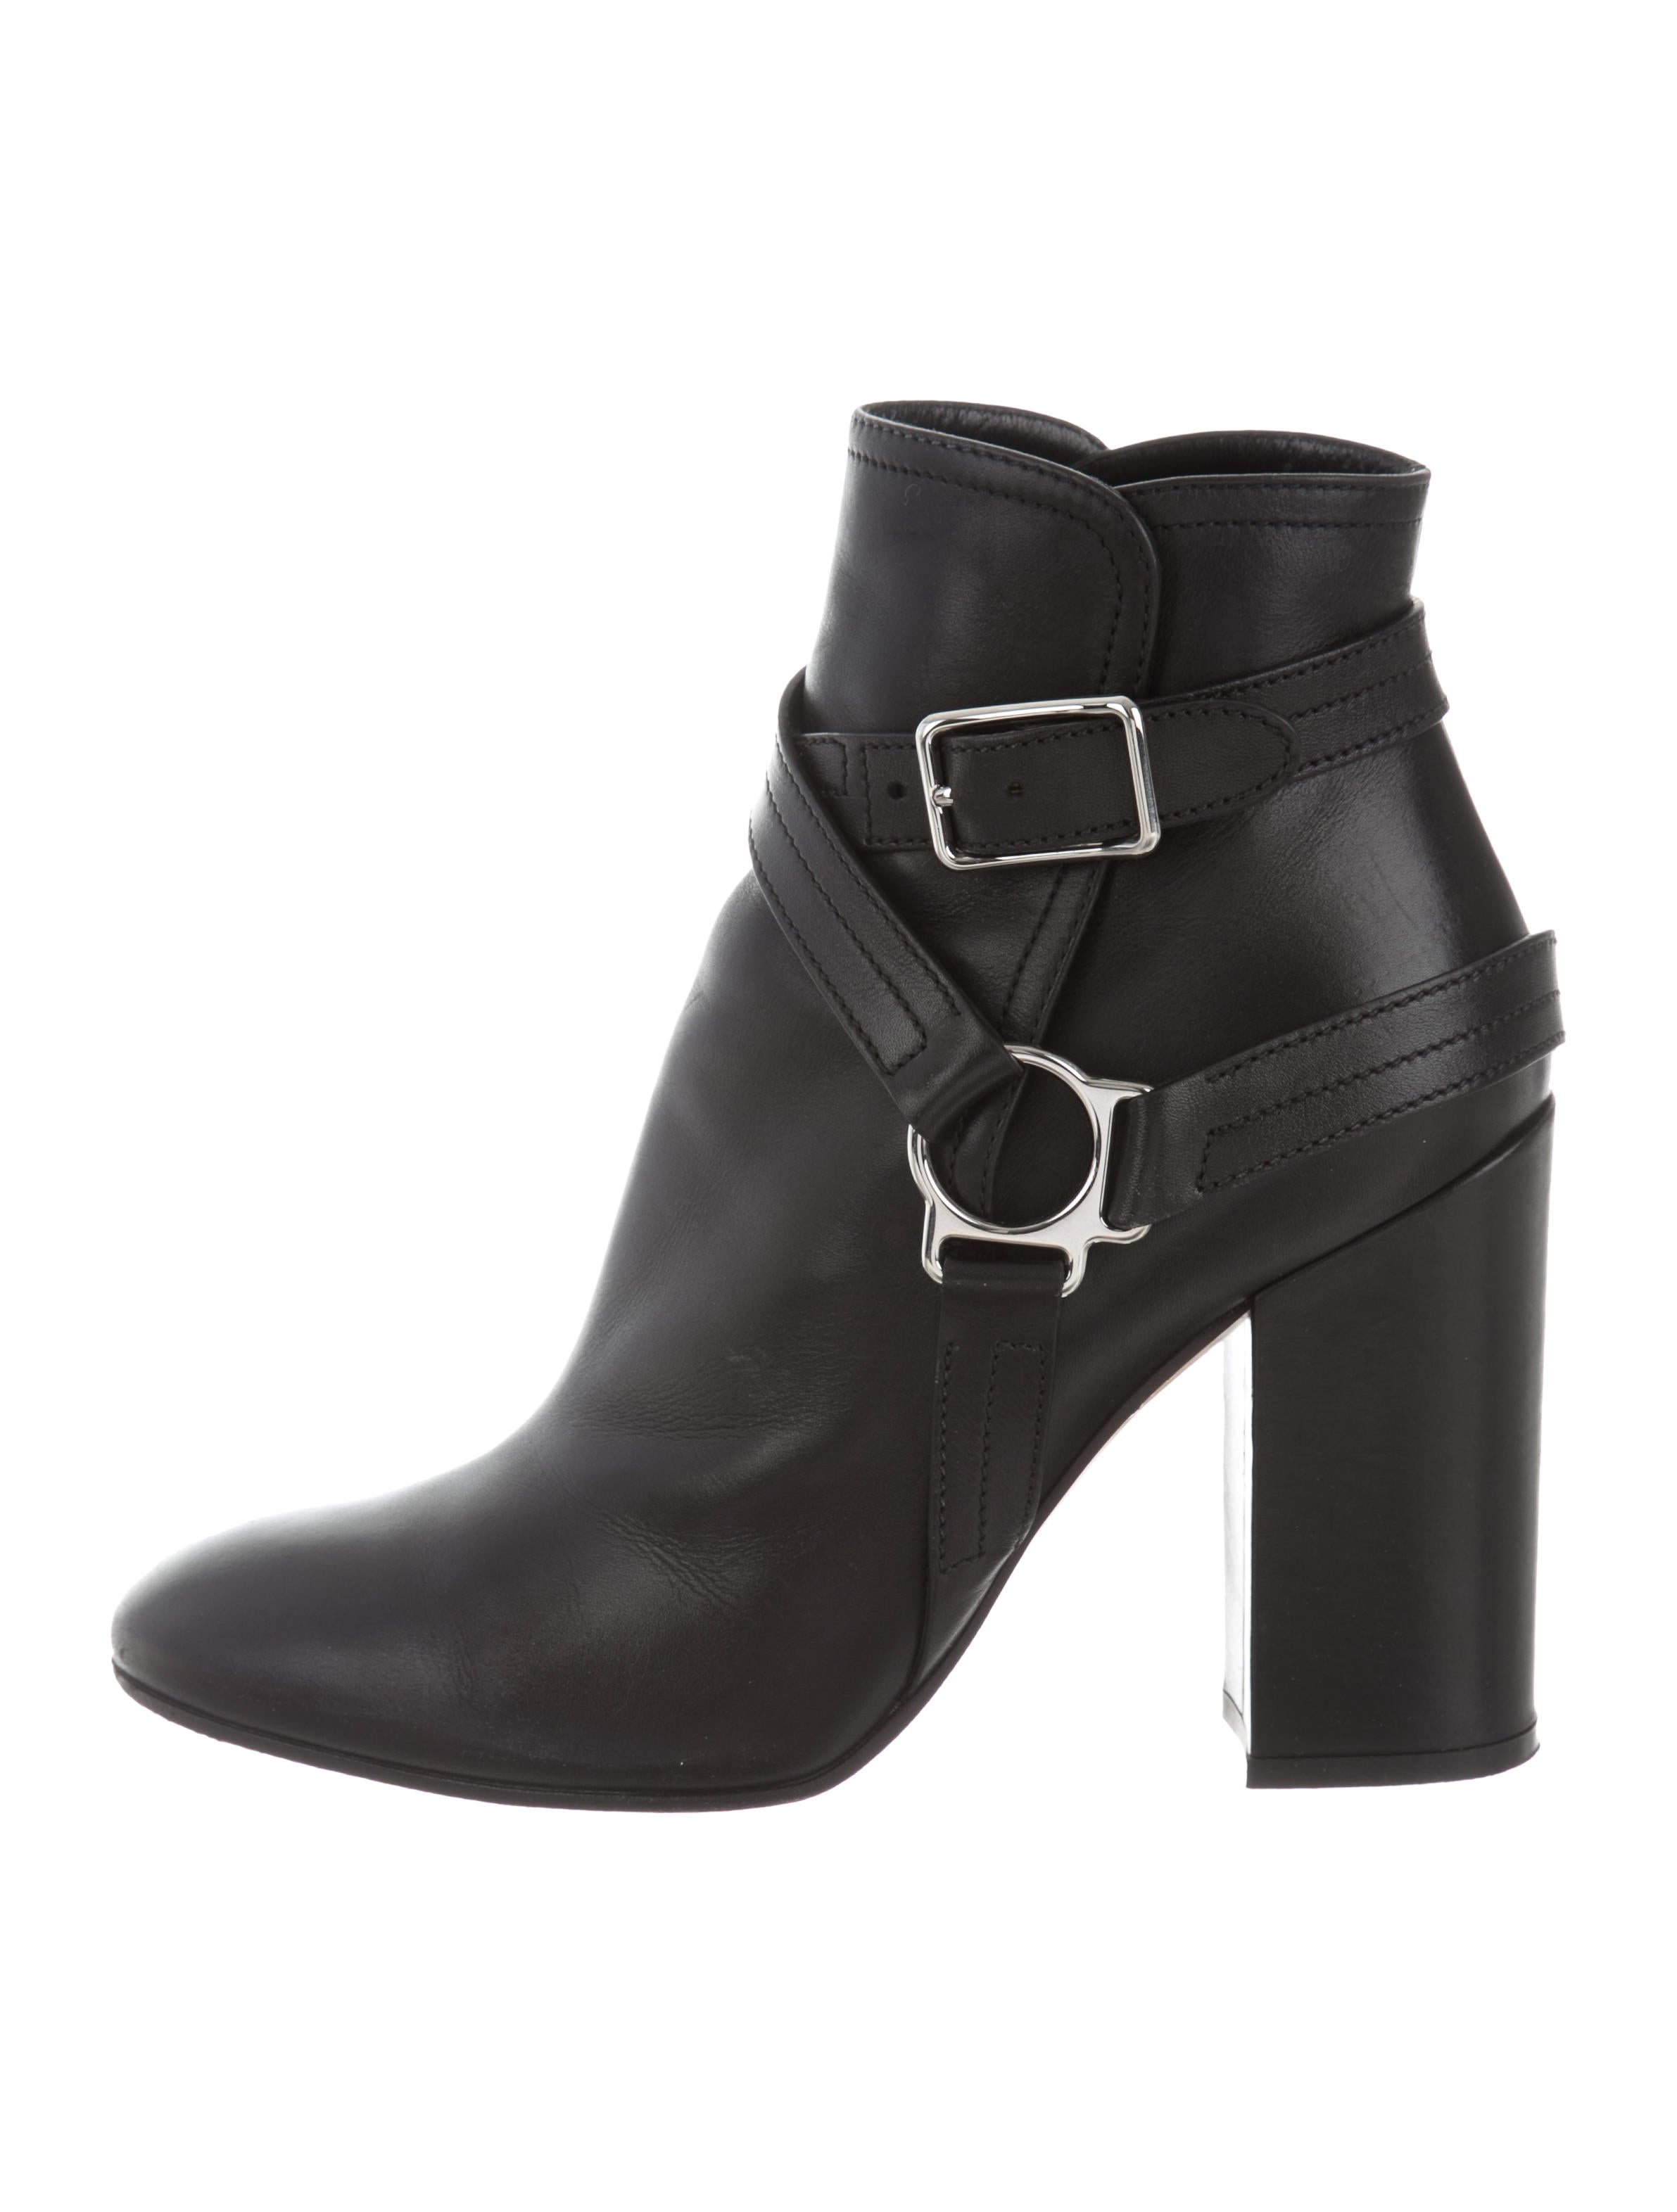 Giambattista Valli Buckle Leather Ankle Boots from china cheap online hot sale cheap price YEz4wd